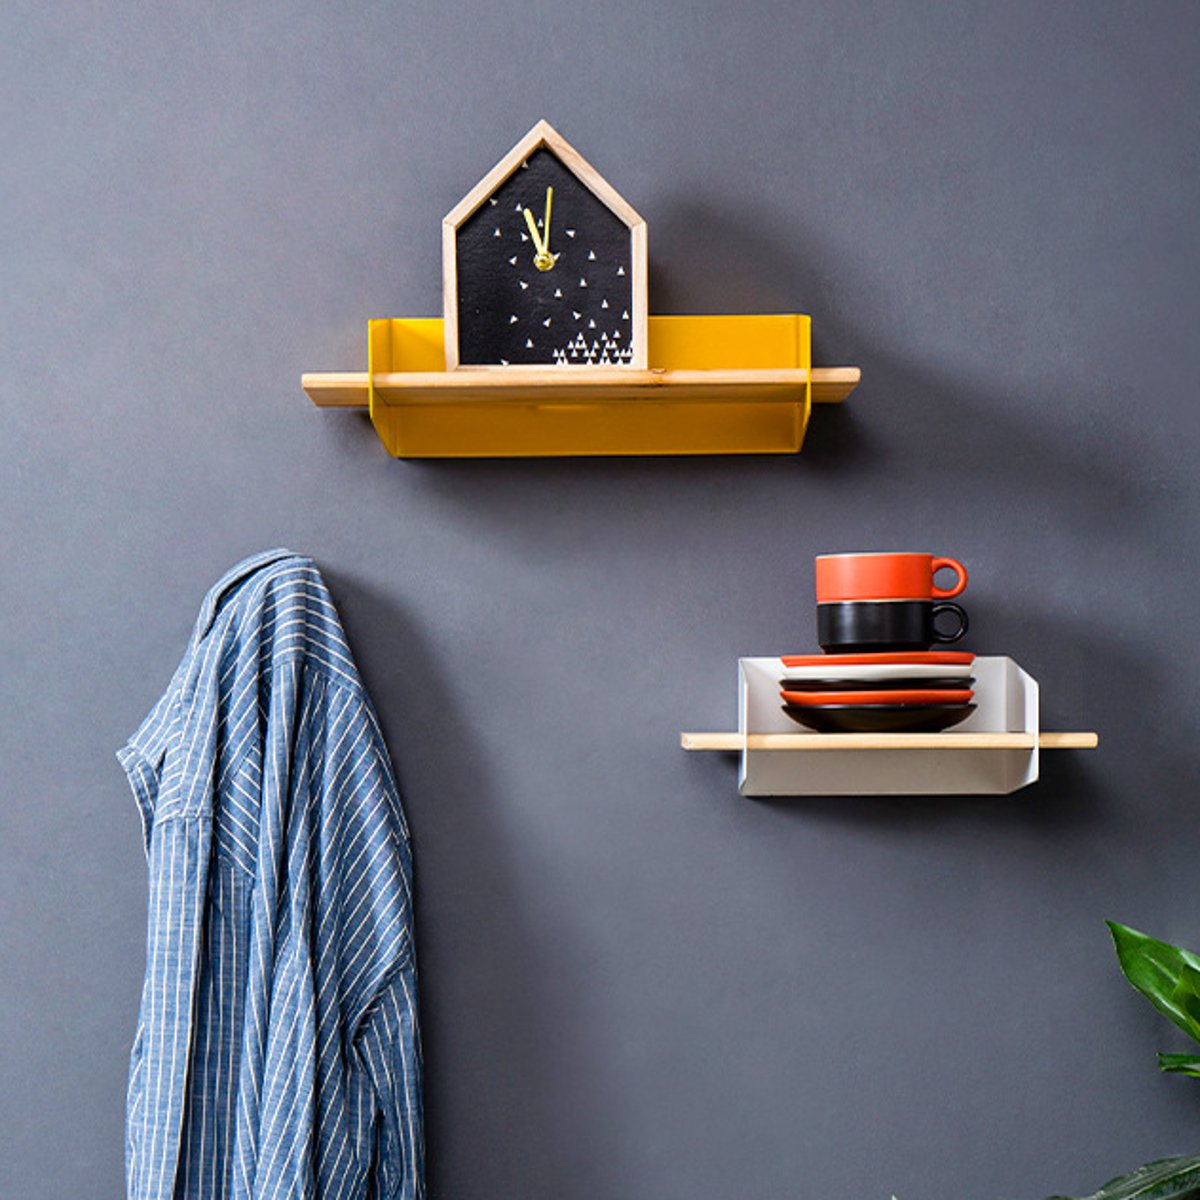 5 Color 20CM Floating Wall Mounted Shelf Hanging Holder Storage Iron Wood Display Bookshelf Bracket